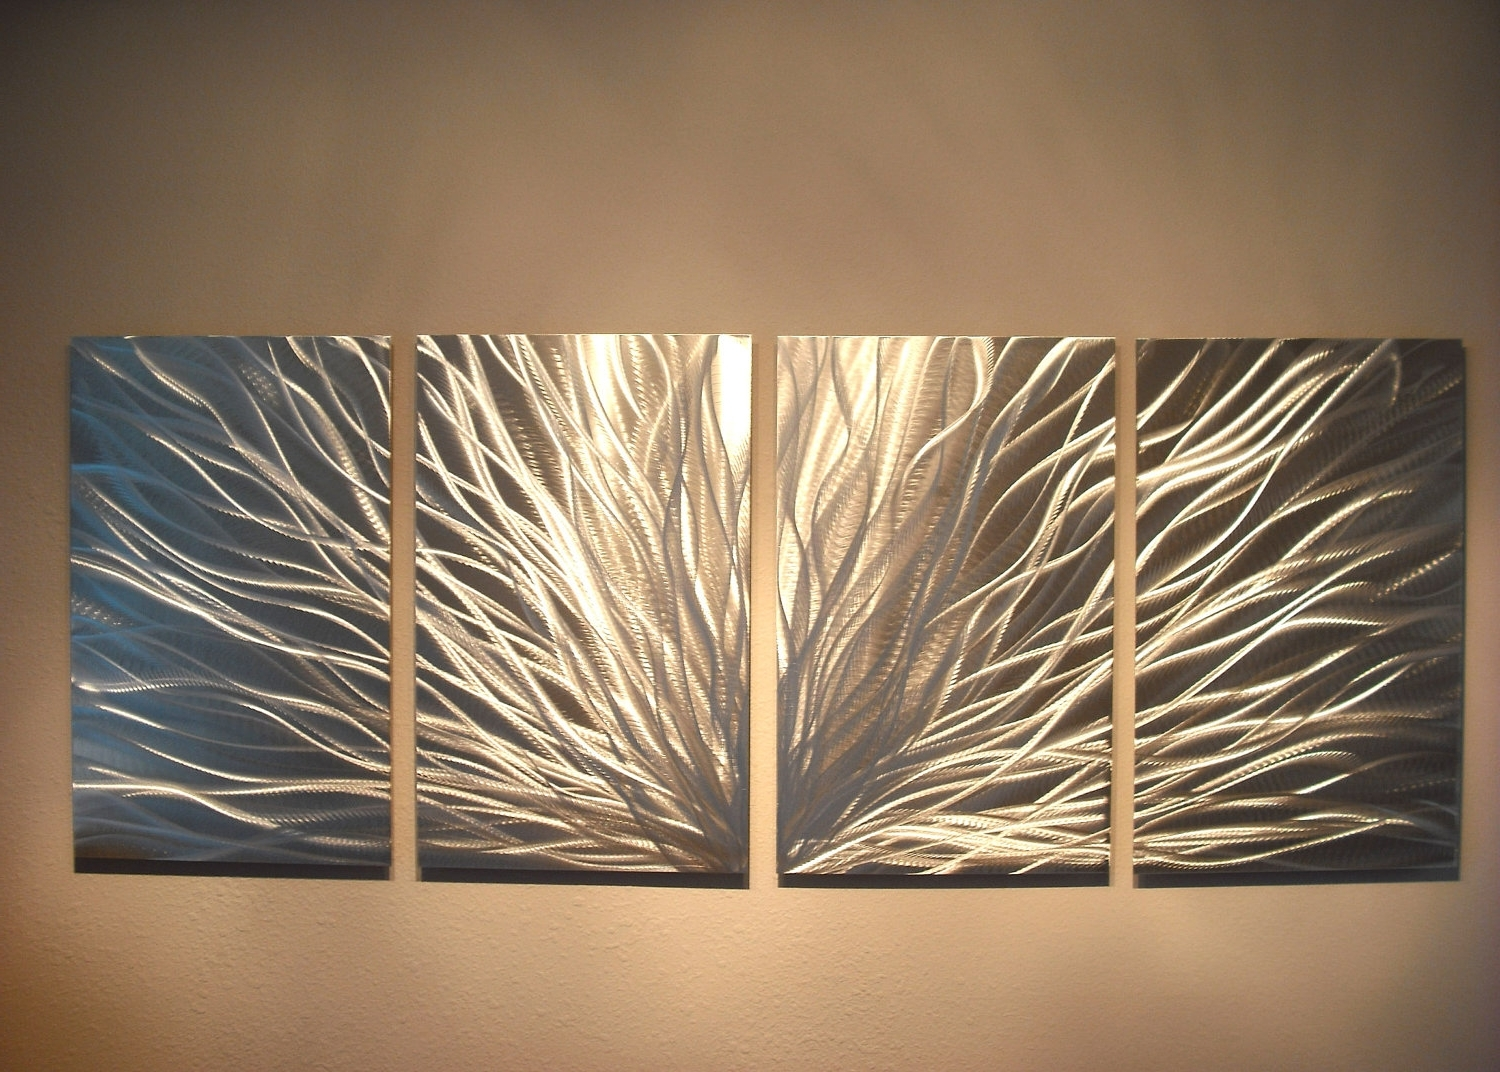 Radiance – Abstract Metal Wall Art Contemporary Modern Decor Pertaining To Well Liked Abstract Art Wall Hangings (View 6 of 15)